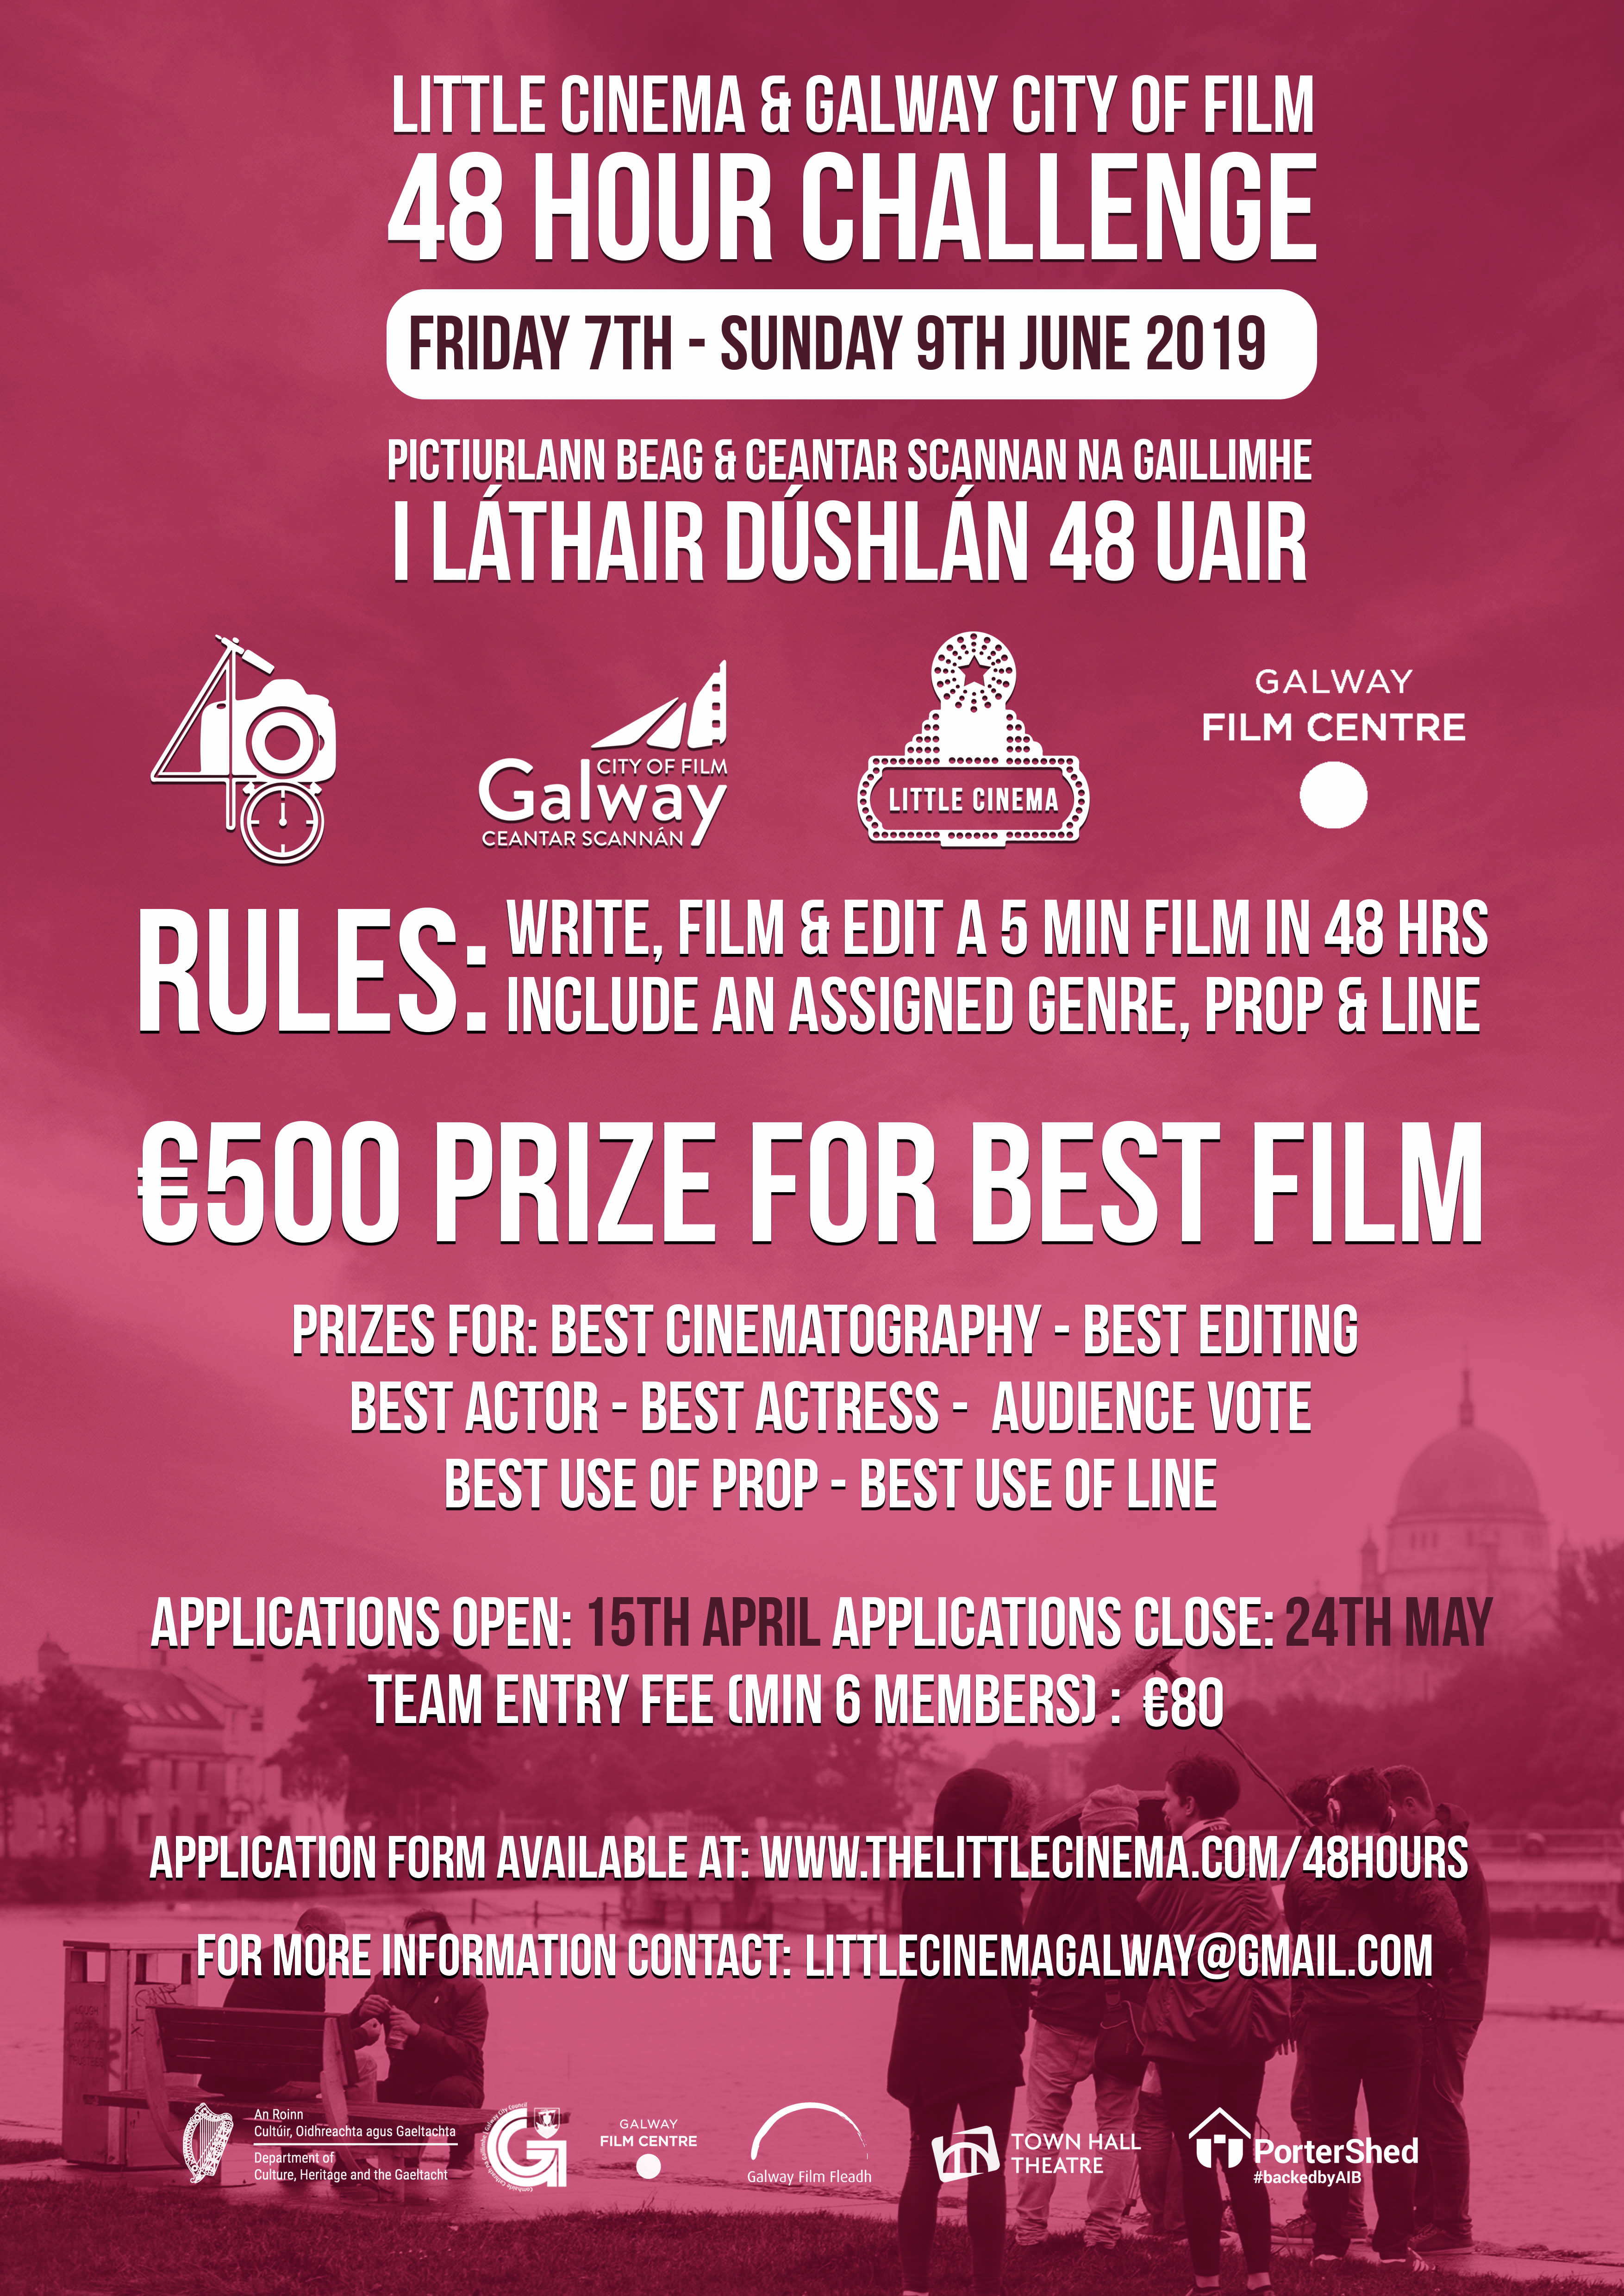 Applications now OPEN for Little Cinema & Galway City of Film 48 Hour Challenge 2019!